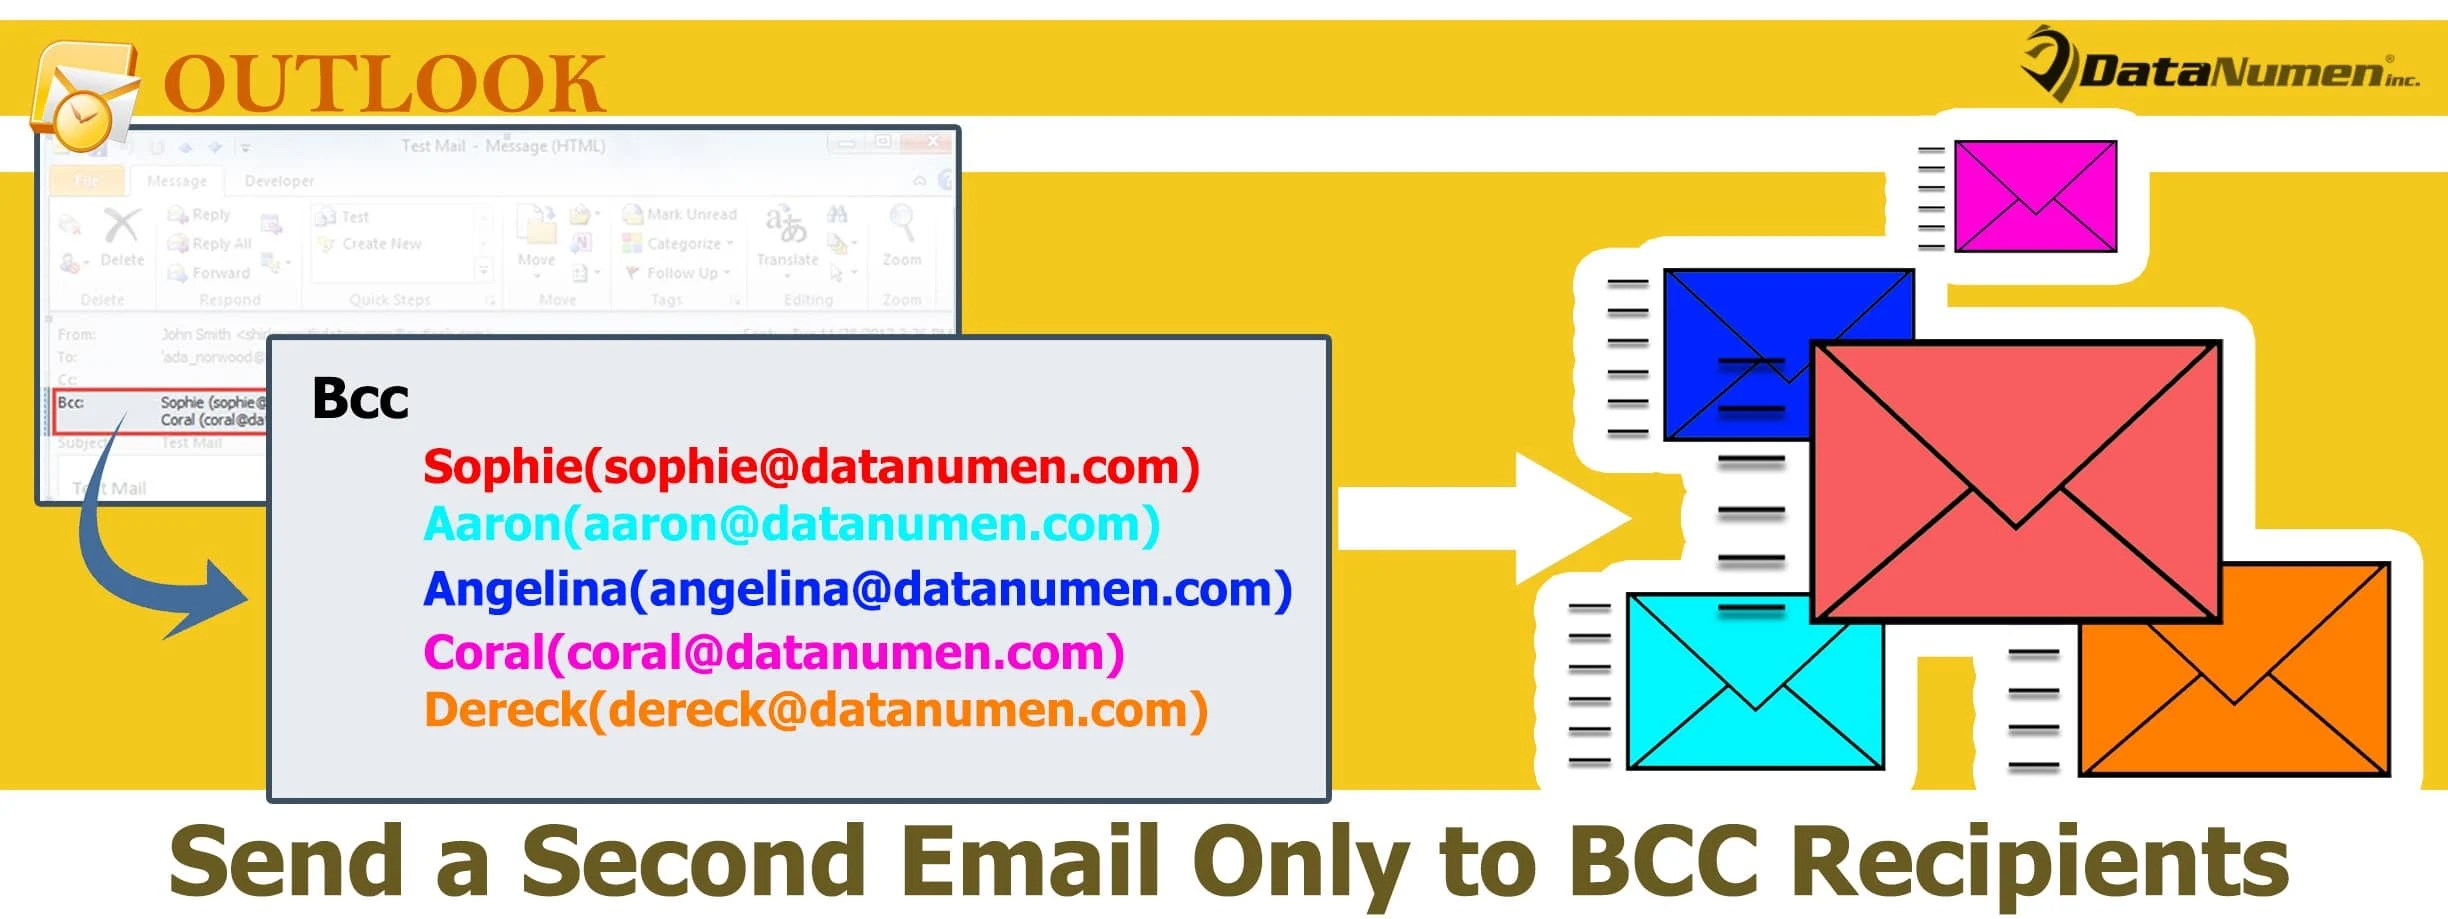 Send a Second Email Only to the BCC Recipients of an Outlook Email